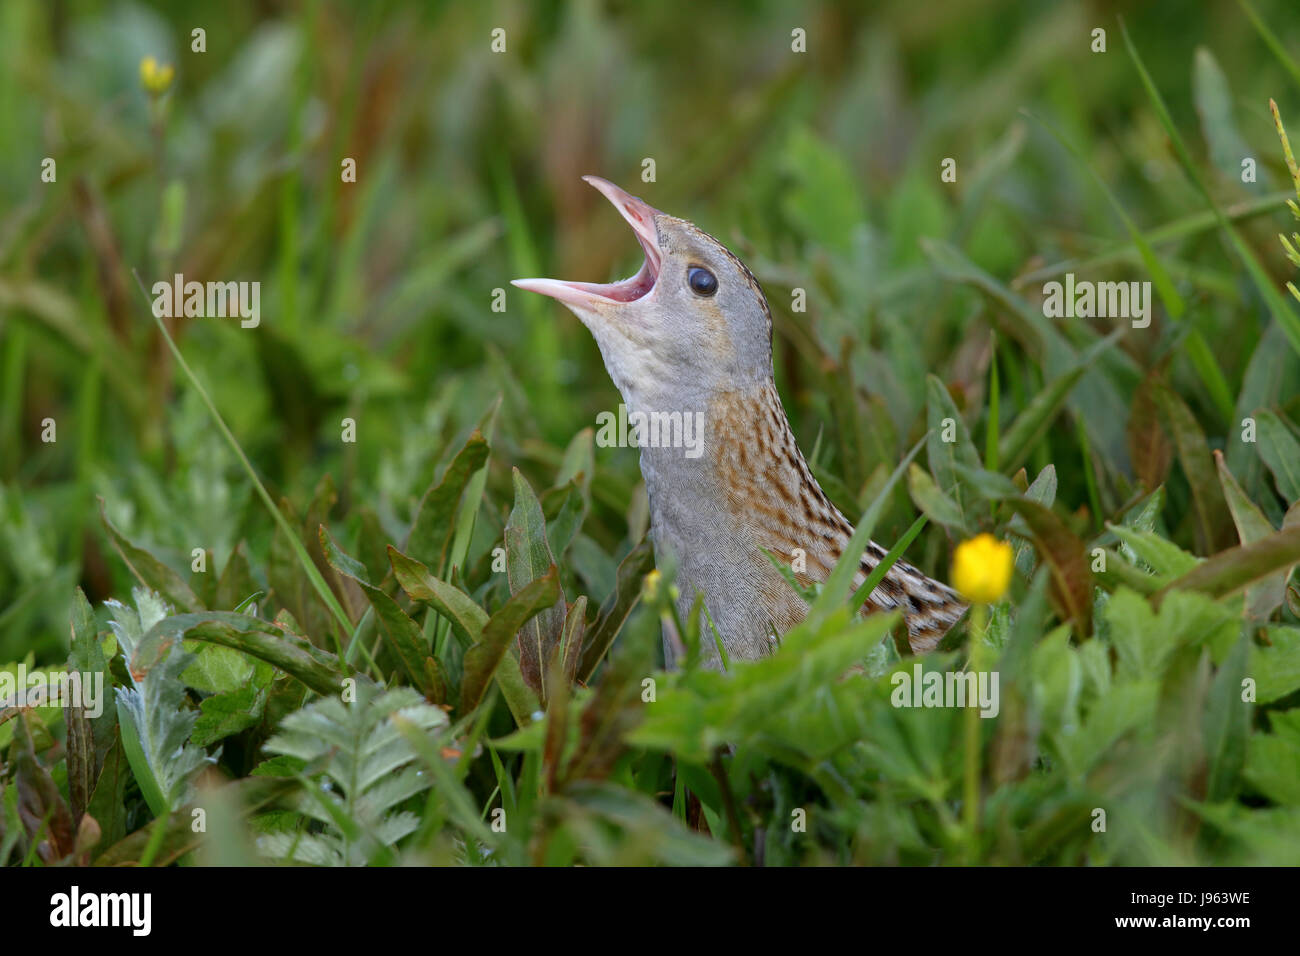 Corncrake, Corn Crake, or Landrail, Crex crex calling and skulking in long meadow grass on North Uist, Outer Hebrides - Stock Image